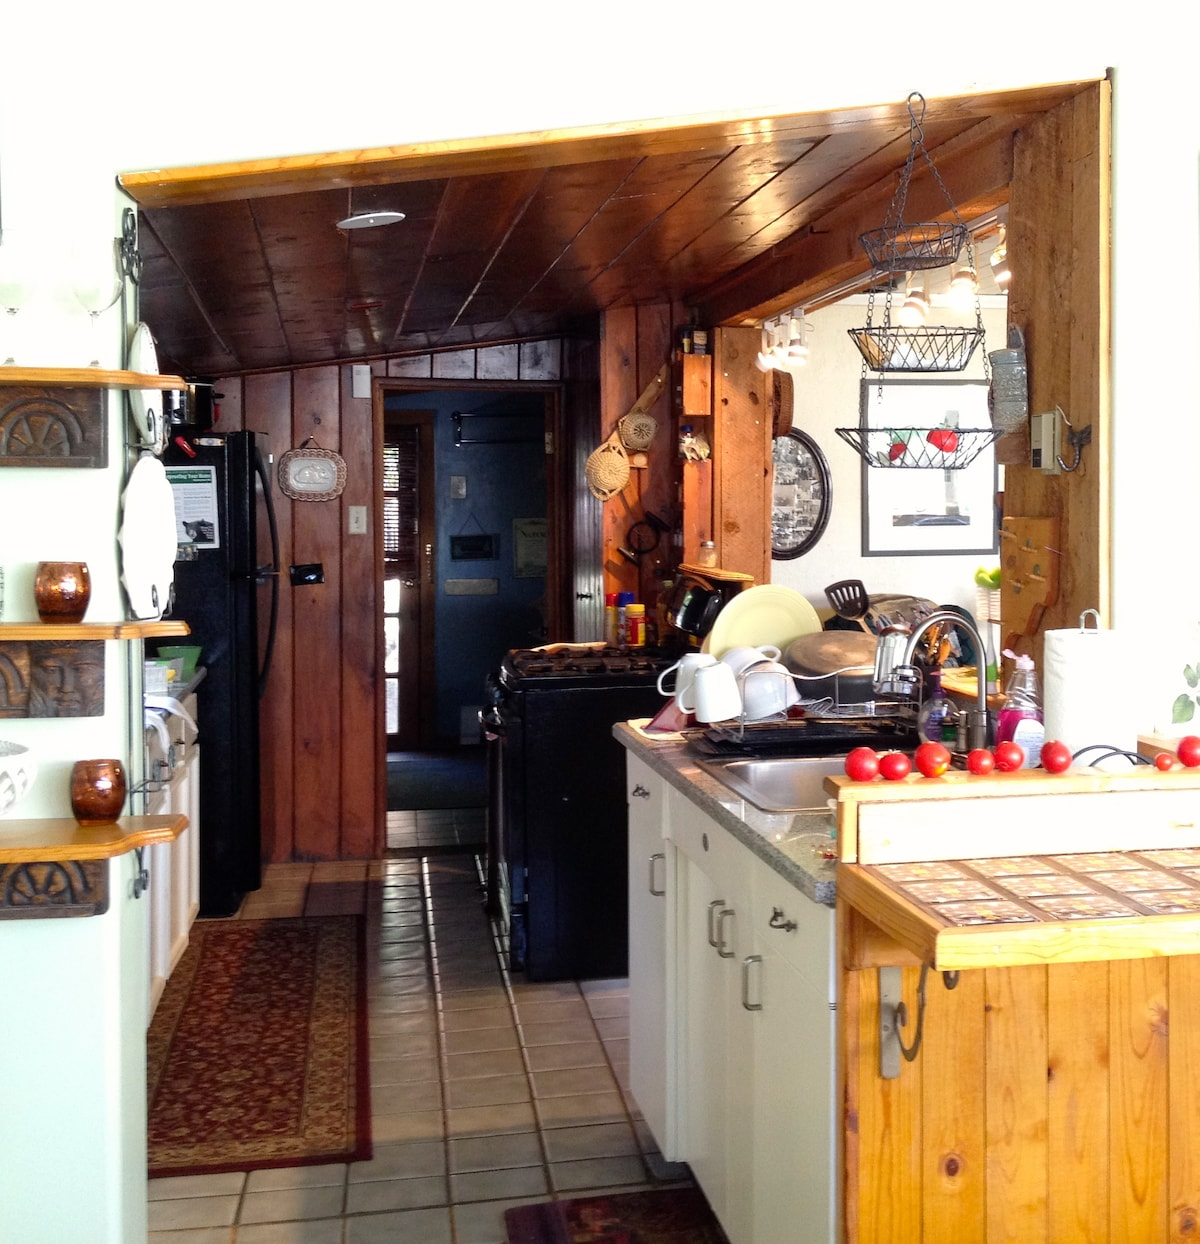 The galley styled kitchen features a new (2012) 5- burner, convection oven stove with griddle and a full size refrigerator (2012) with ice maker.